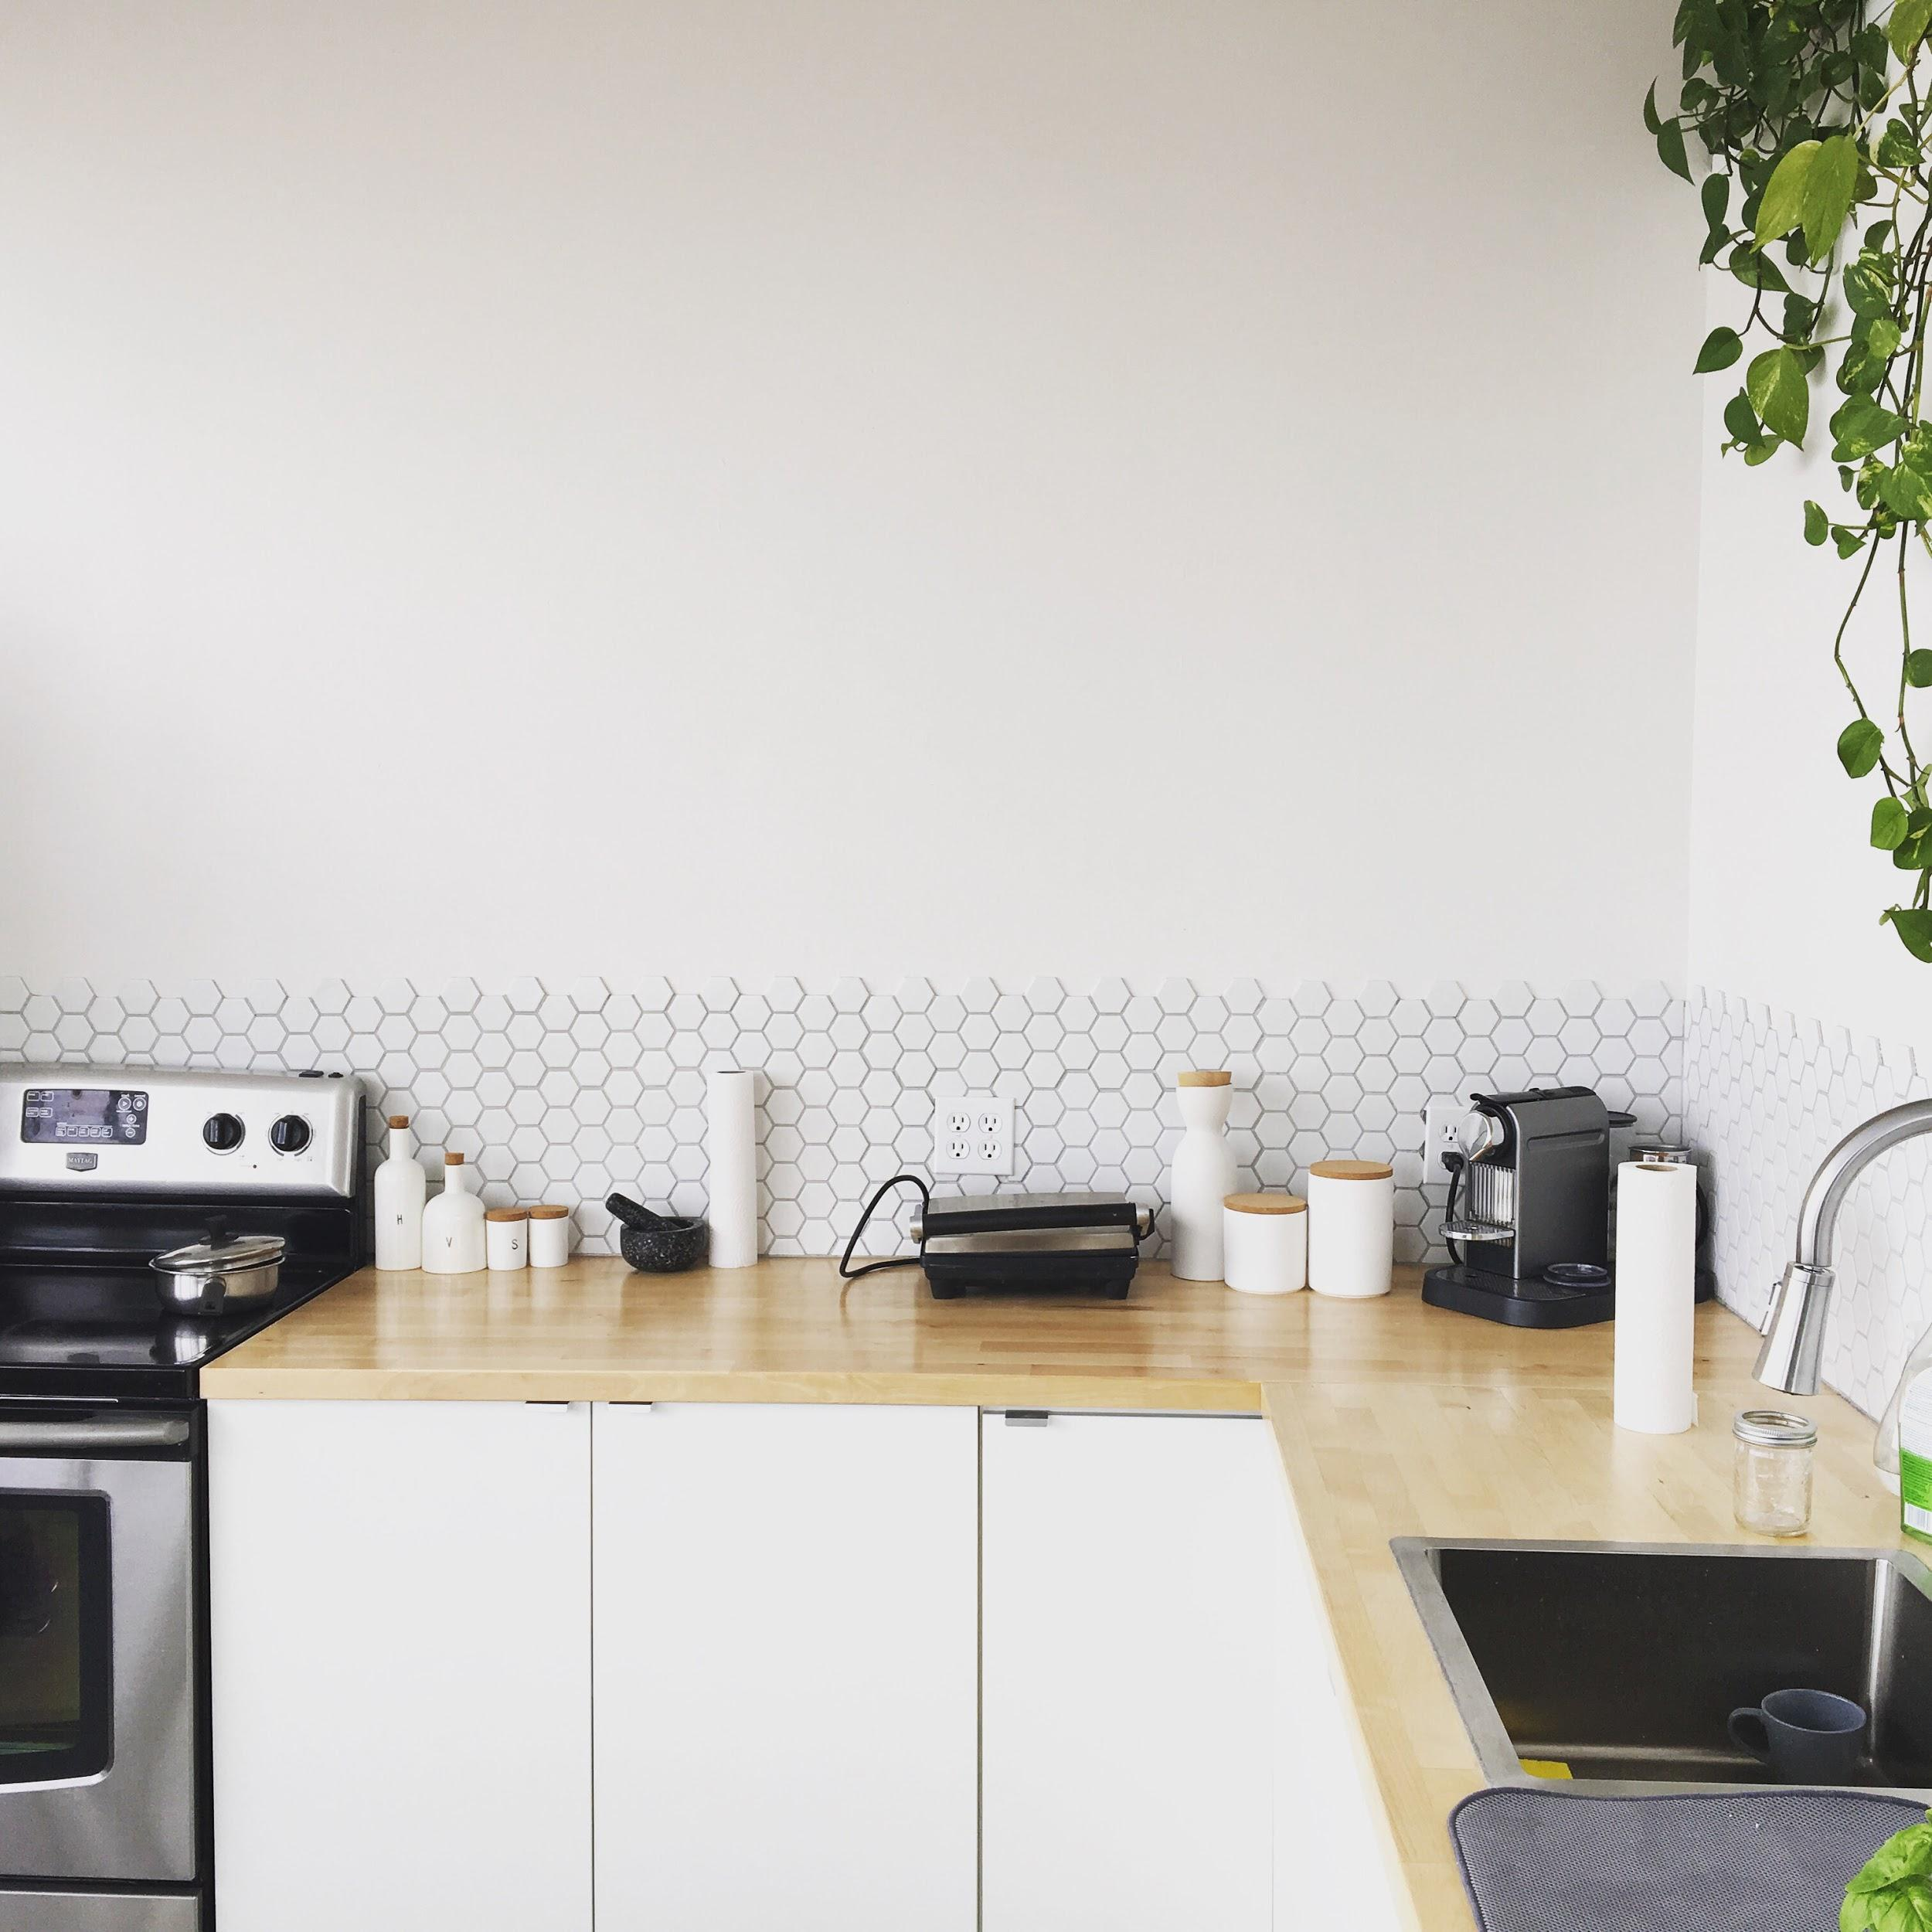 Soundproof Your Kitchen In 4 Easy Ways. Casual designed room with white creamy walls